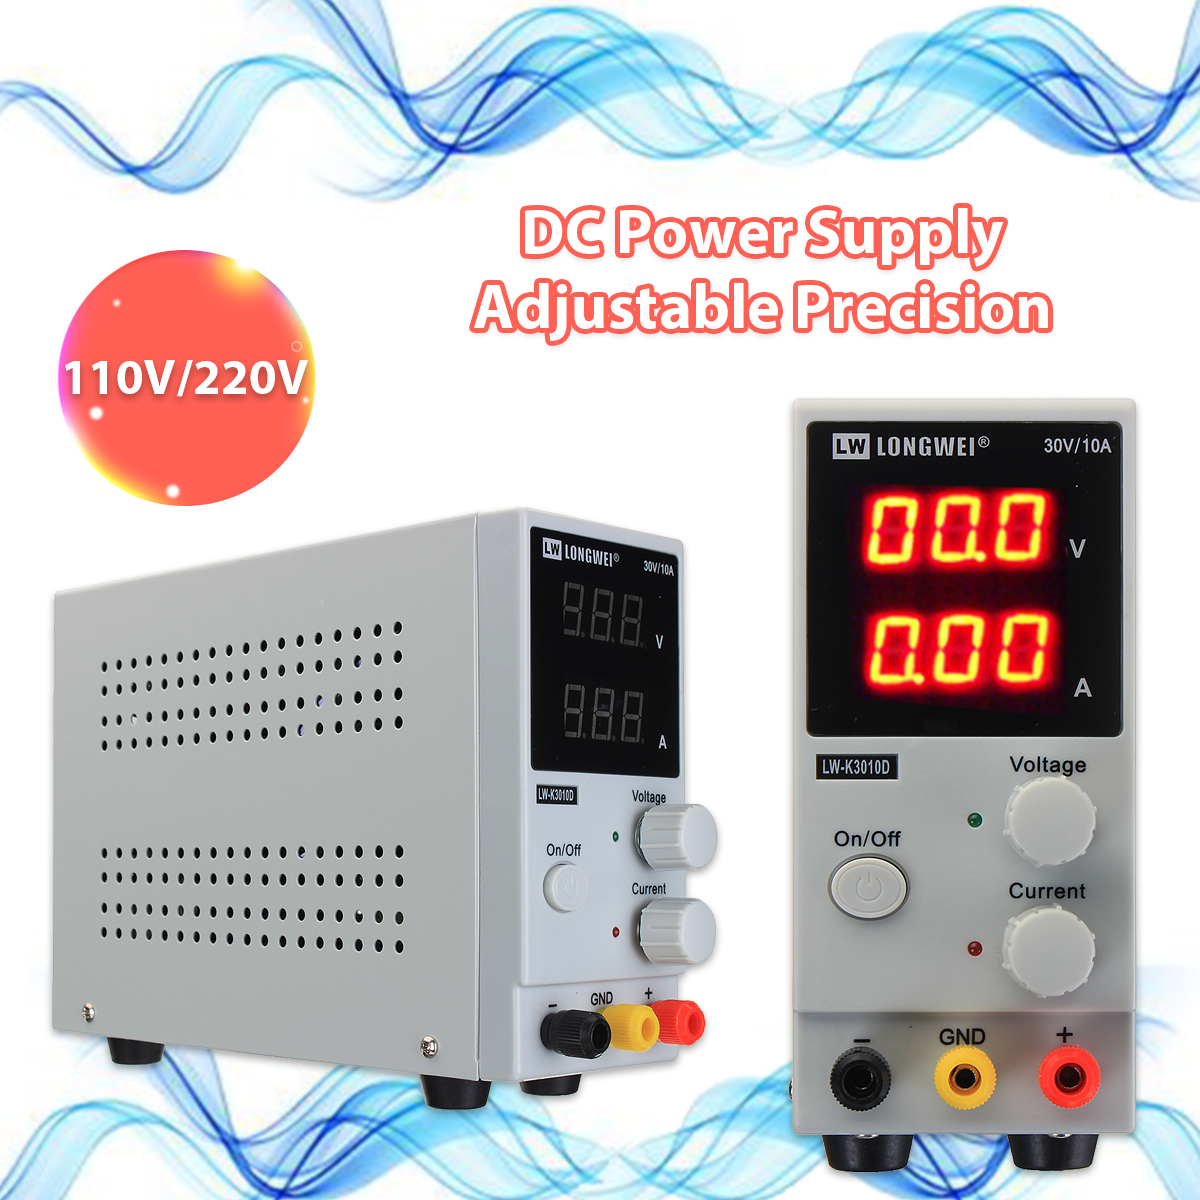 LONG WEI® LW-K3010D 110V/220V 0-10A 0-30V Adjustable DC Power Supply Regulated Digital Switching Power Supply